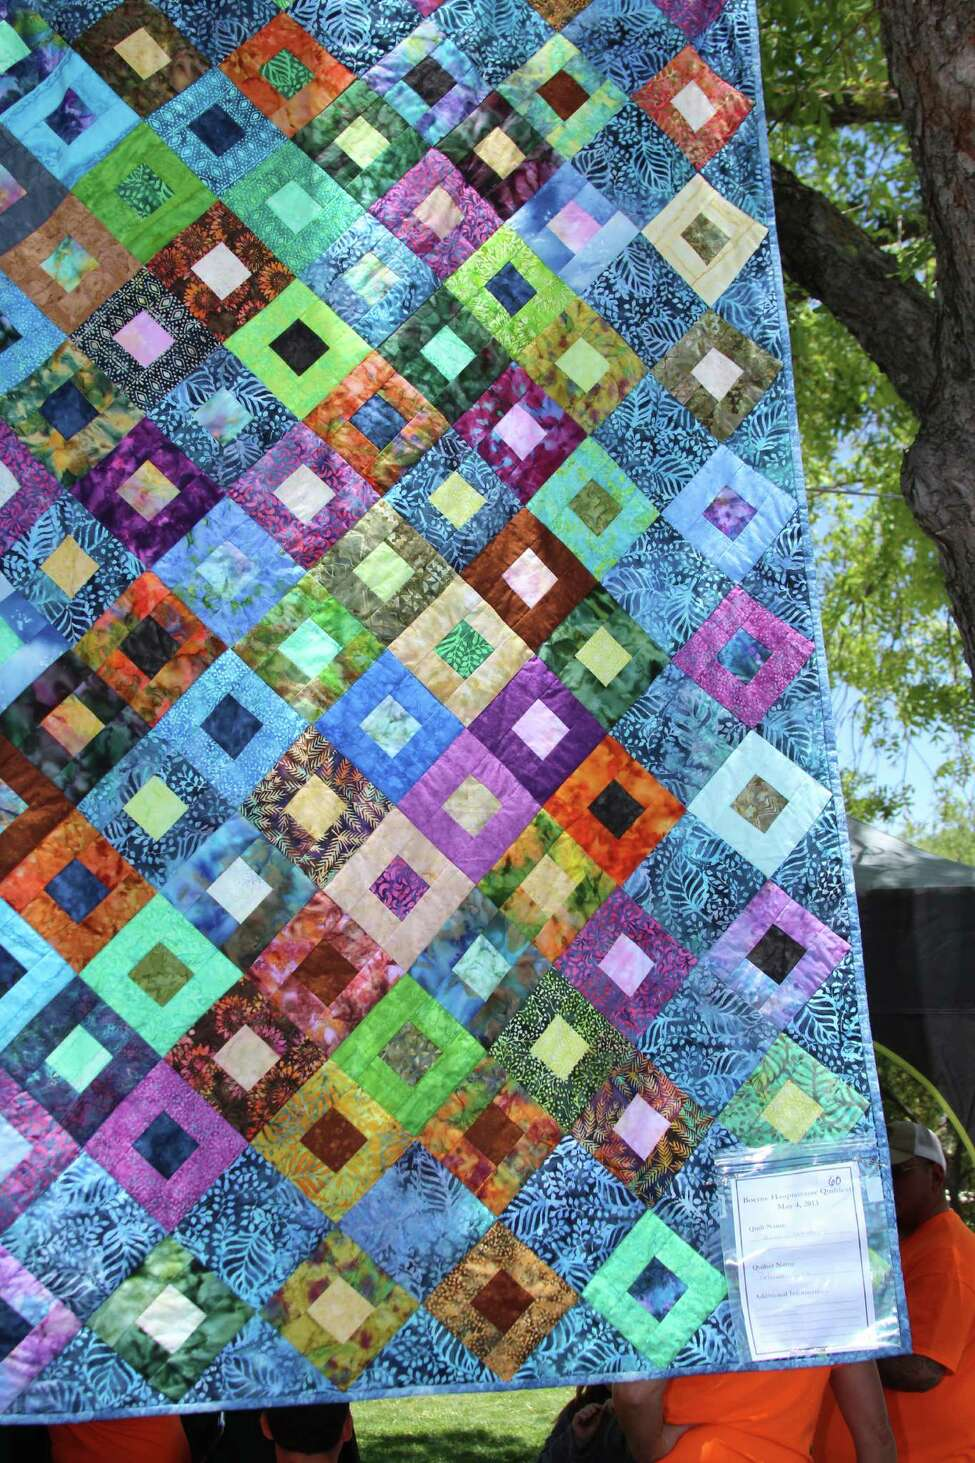 Haupstrasse Quiltfest was held on Boerne's Main Plaza and throughout downtown Saturday, with quilt shows, sales and demonstrations and displays in retail store windows.